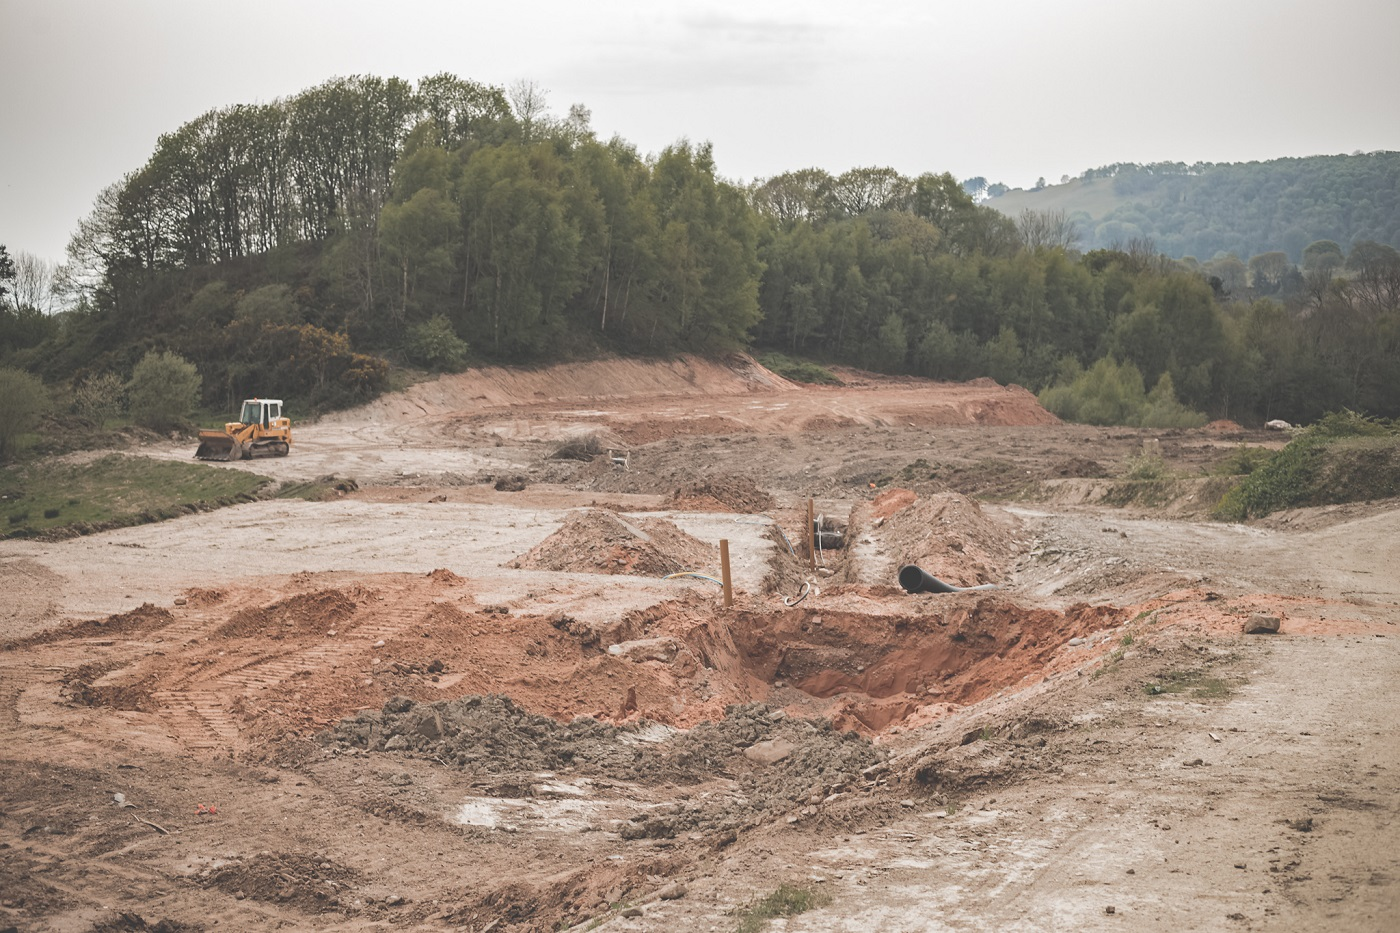 The old sand quarry shows its hand